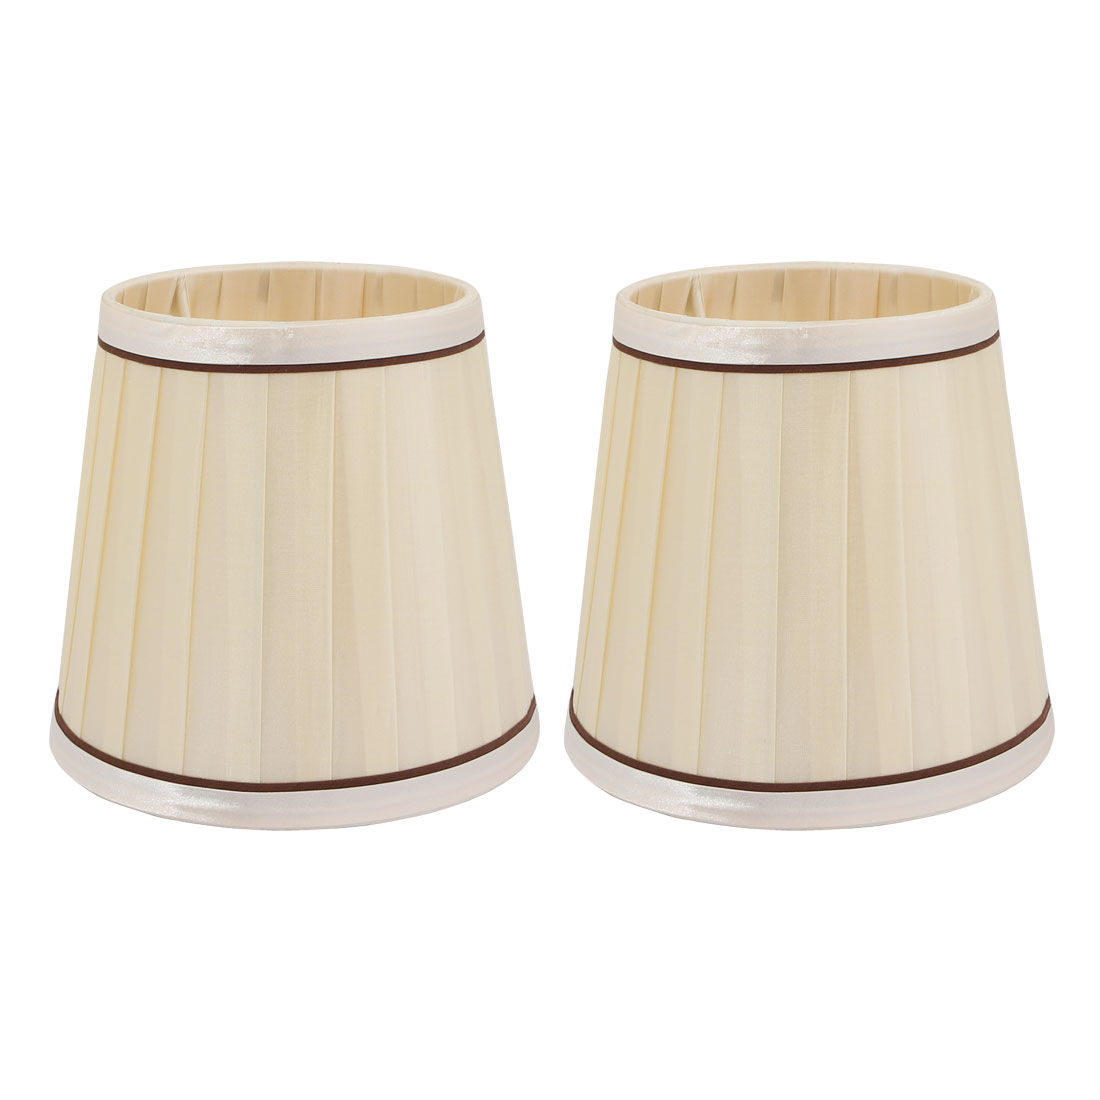 2pcs E14 Lightshade Wall Lamp Candle Chandelier Lamp Shade Beige Fabric-Covered